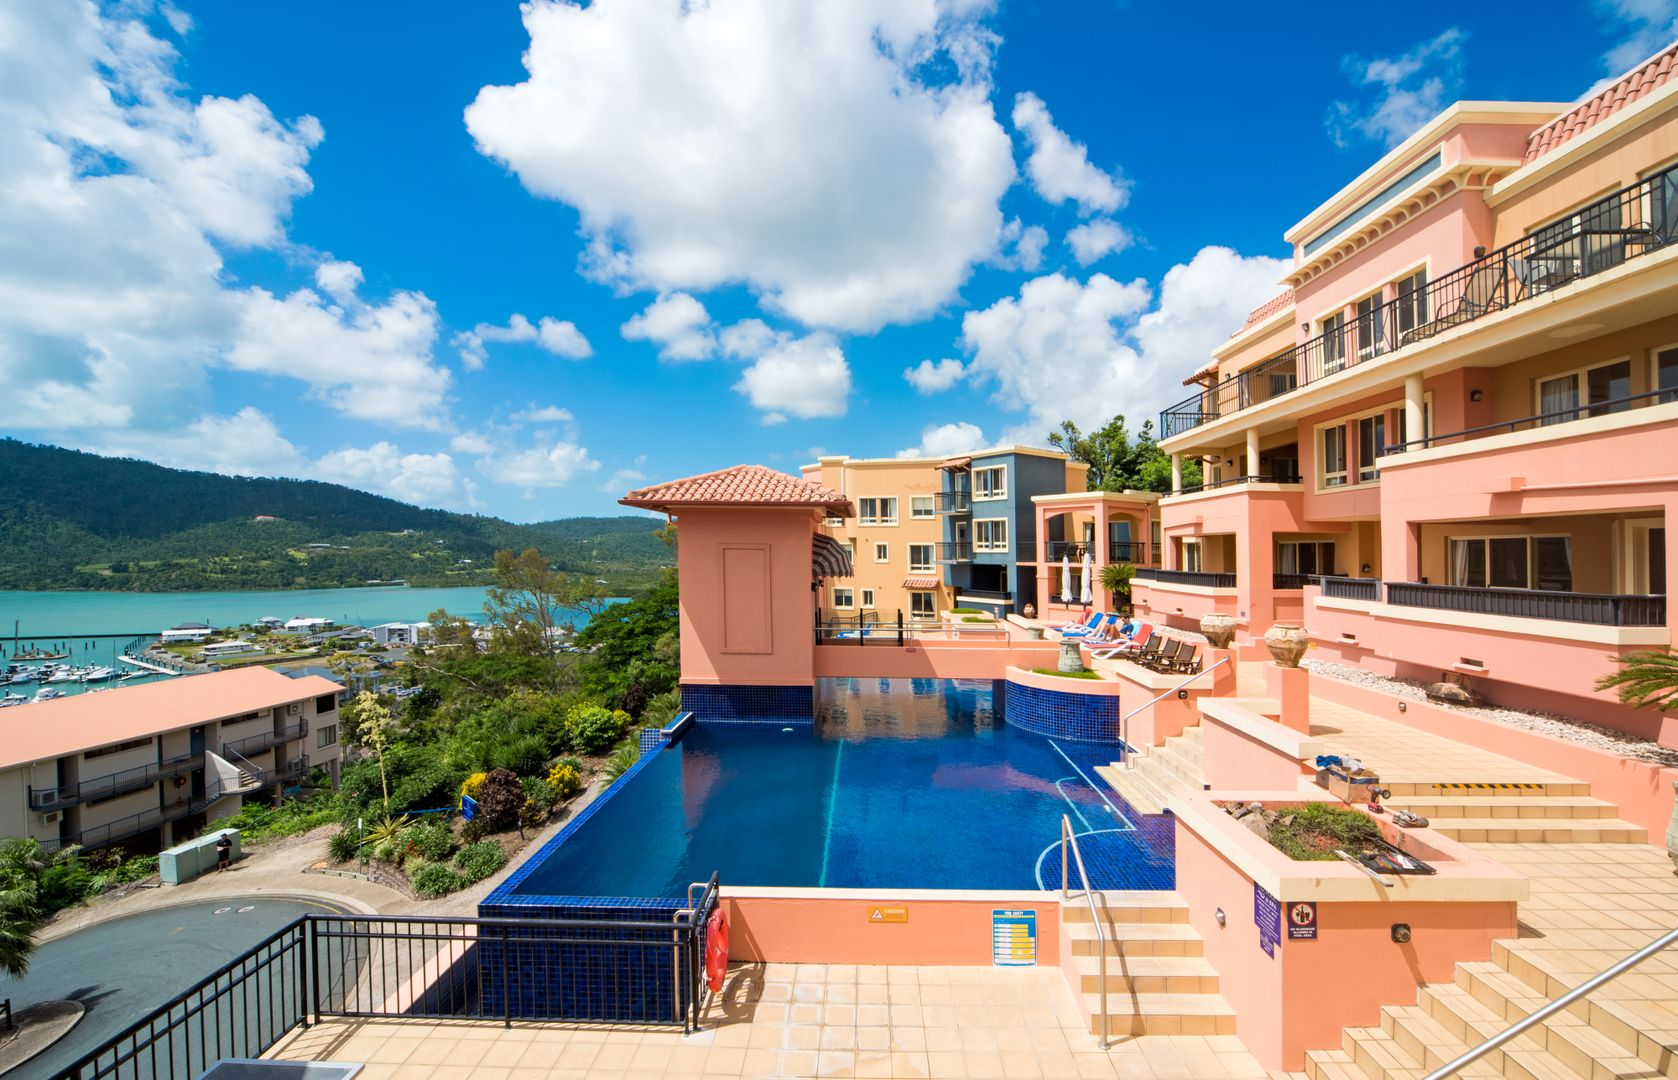 16/18 Golden Orchid Drive, Airlie Beach QLD 4802, Image 0